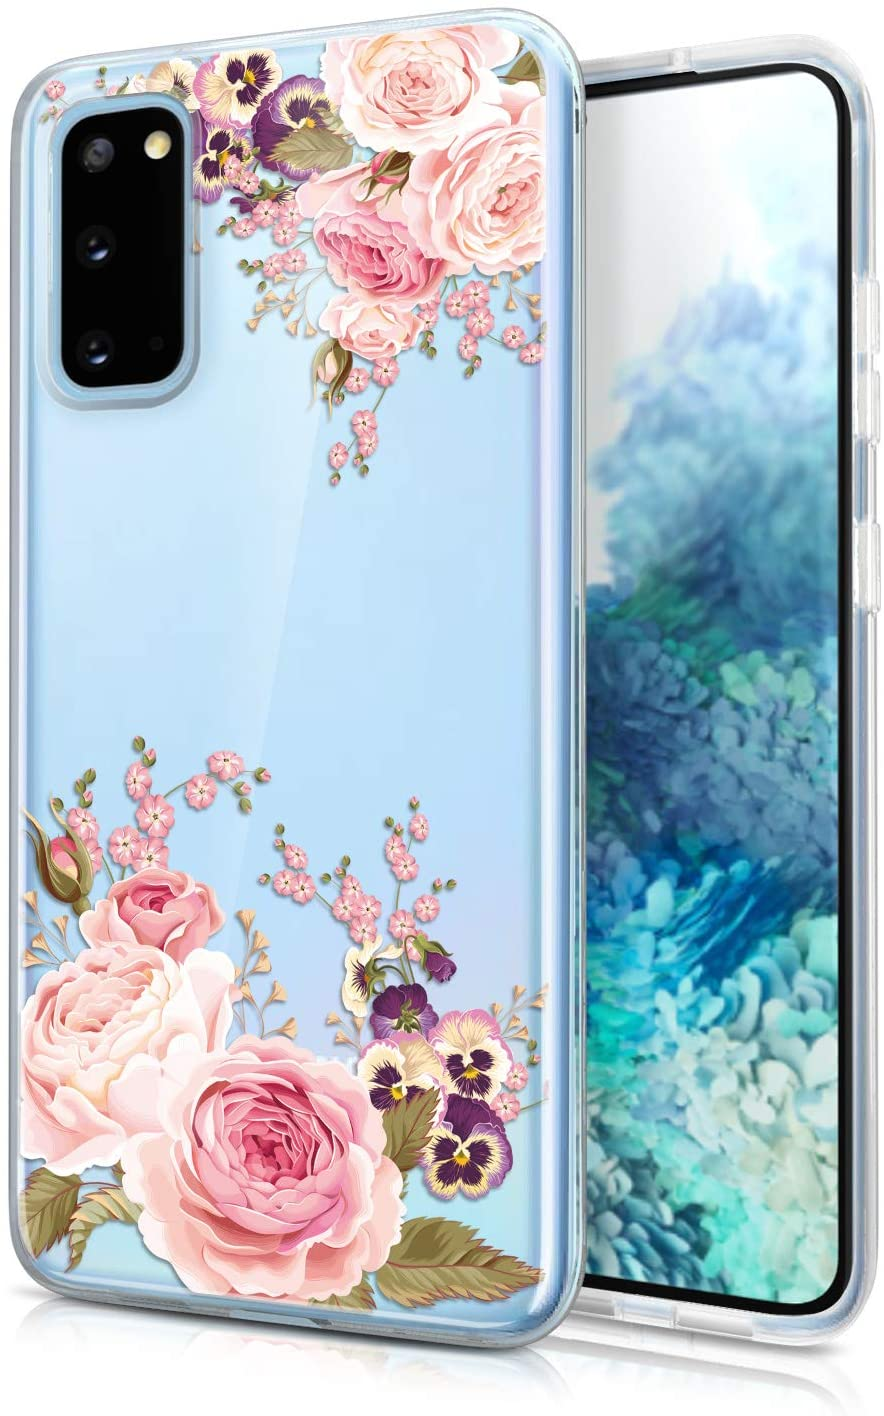 JAHOLAN Galaxy S20 FE Case Clear Cute Girl Flower Design Flexible Bumper TPU Soft Rubber Silicone Cover Phone Case for Samsung Galaxy S20 FE 5G 6.5 inch - Floral Flower Rose